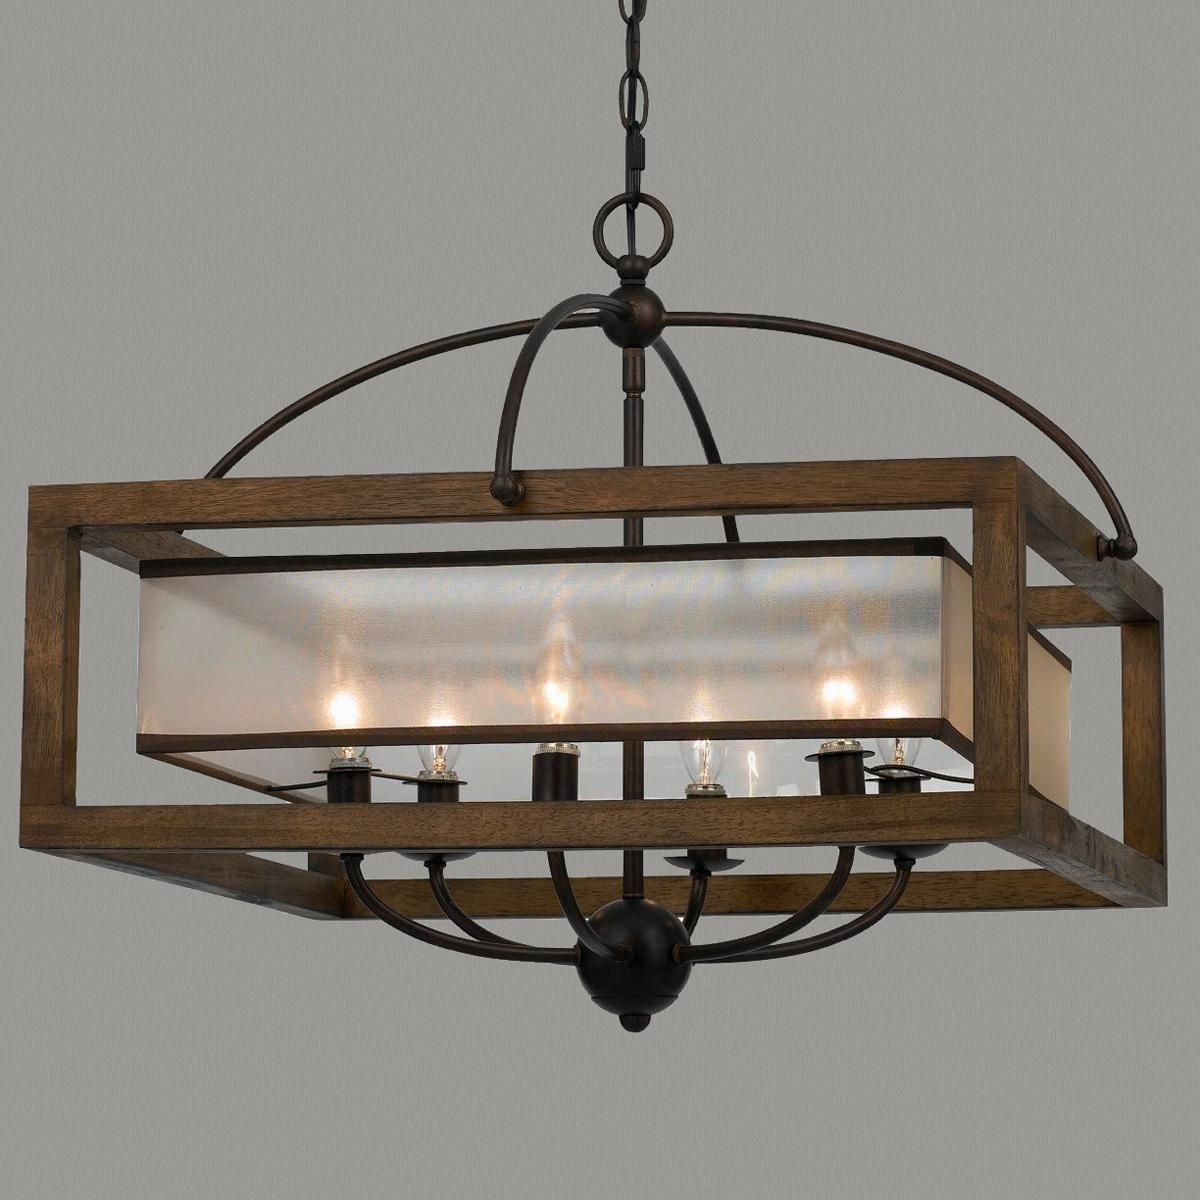 hall elegant large lighting chandelier fixture way chandeliers entryway transitional foyer light small for entrance entry lights modern dining hallway ideas pendant